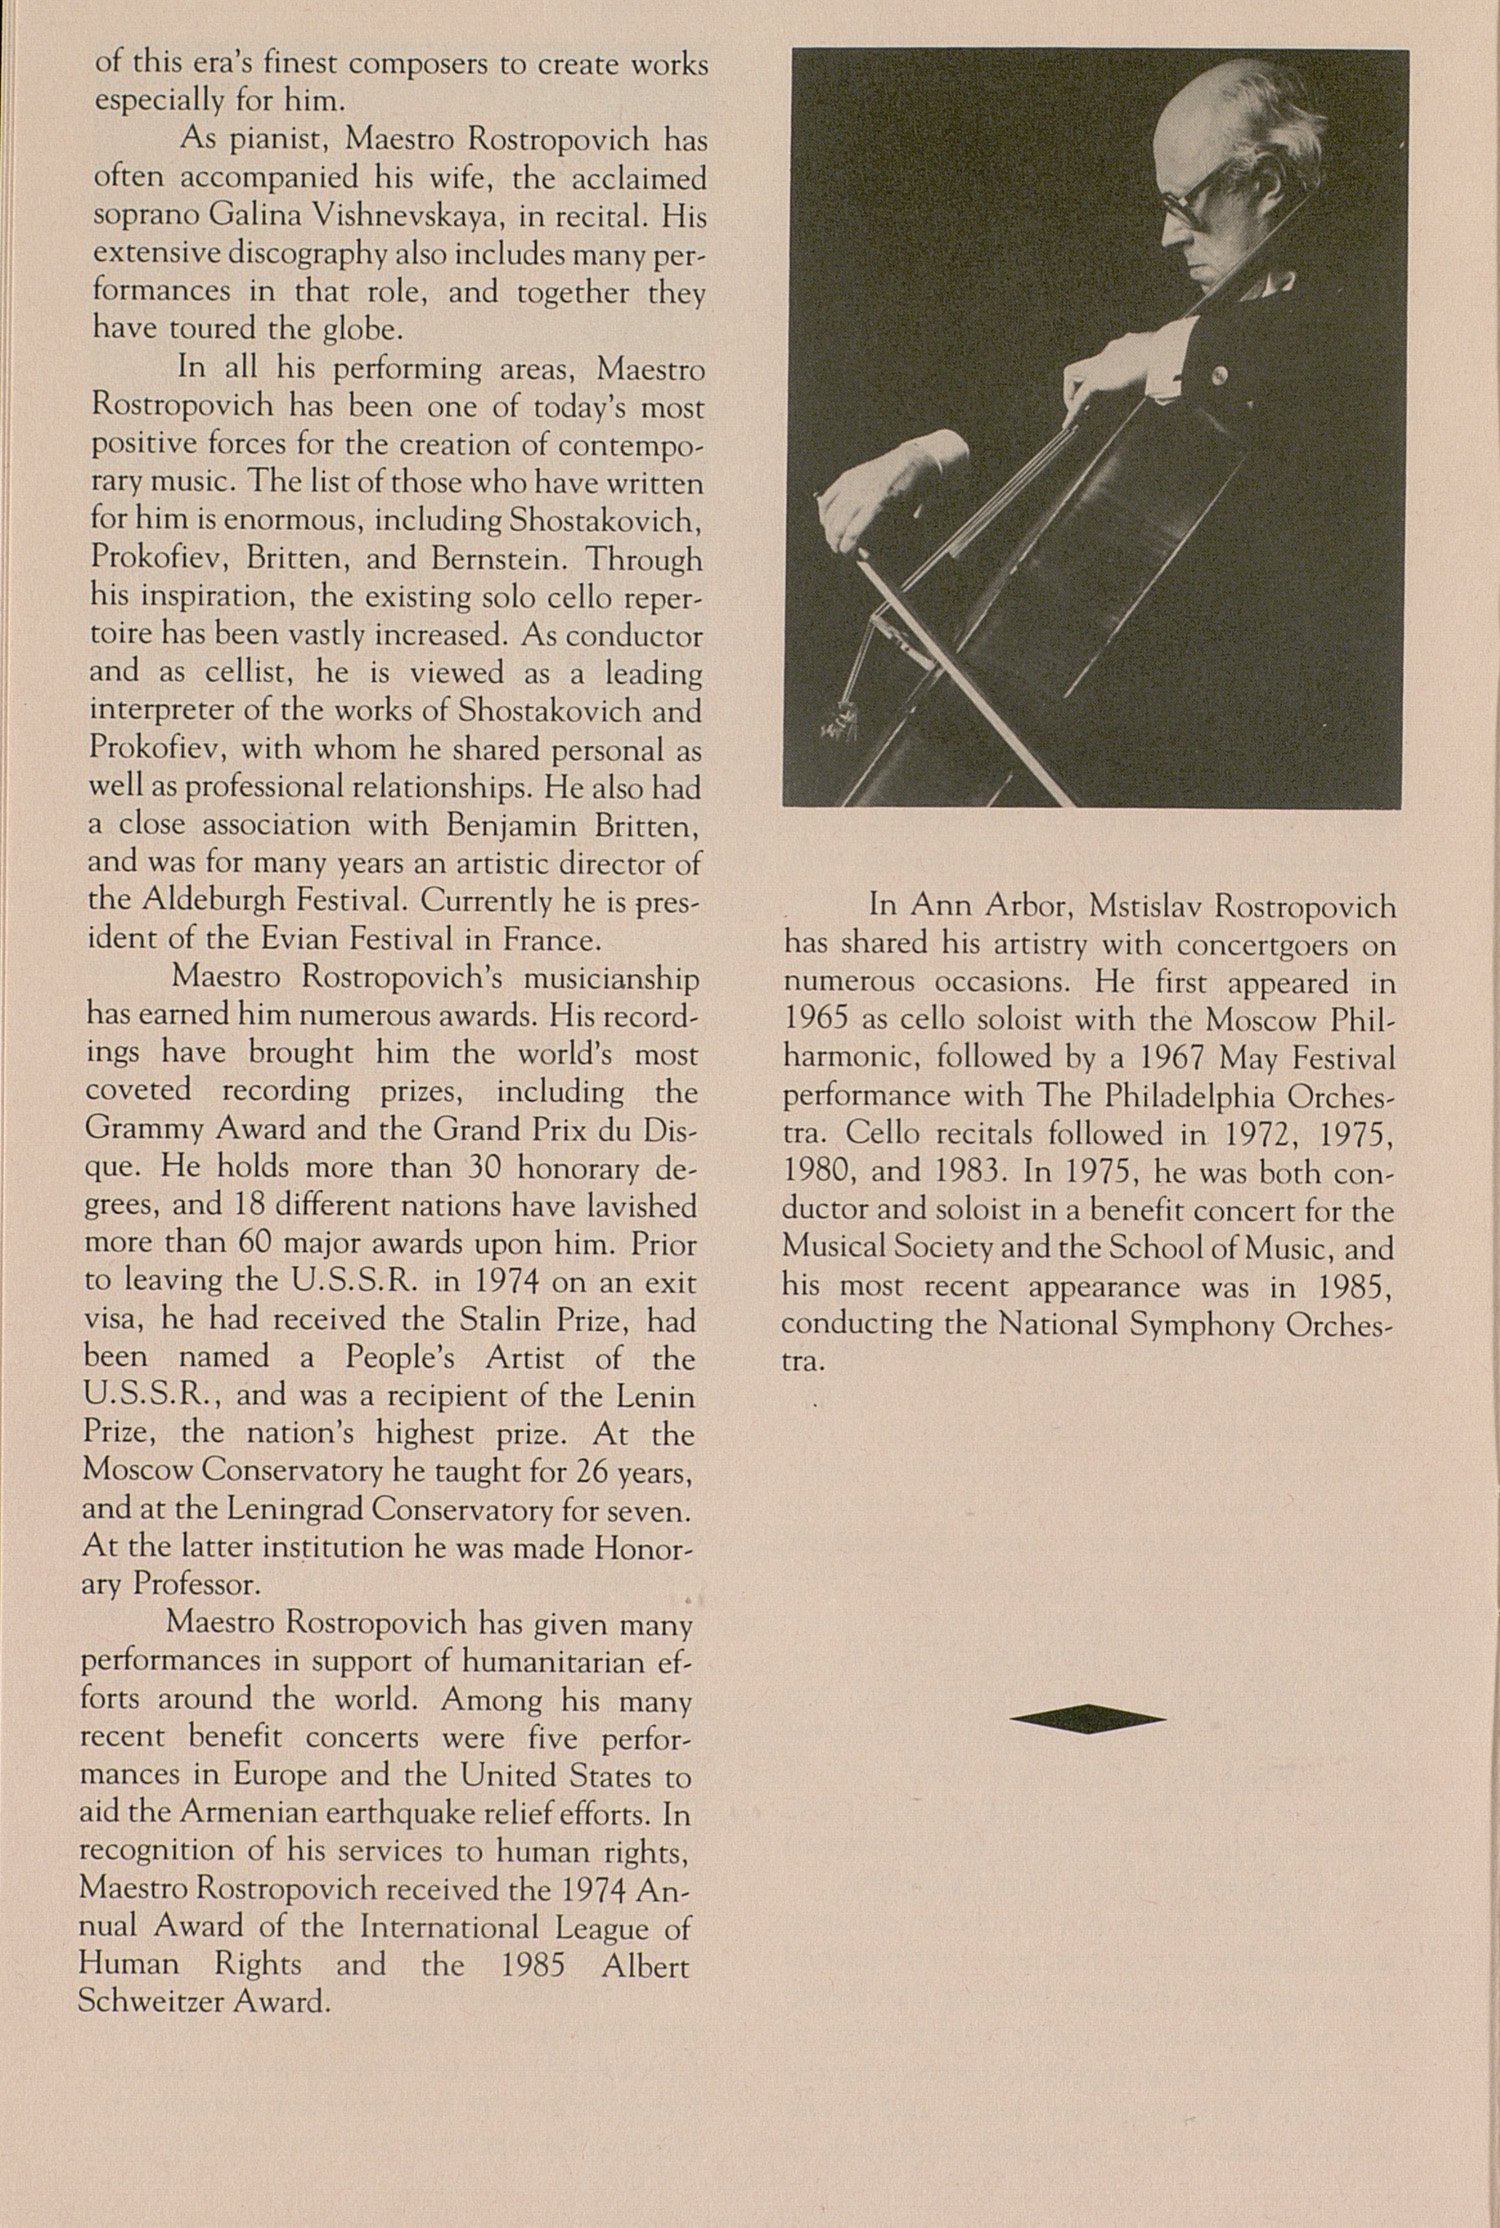 UMS Concert Program, October 12, 1991: University Musical Society -- National Symphony Orchestra image